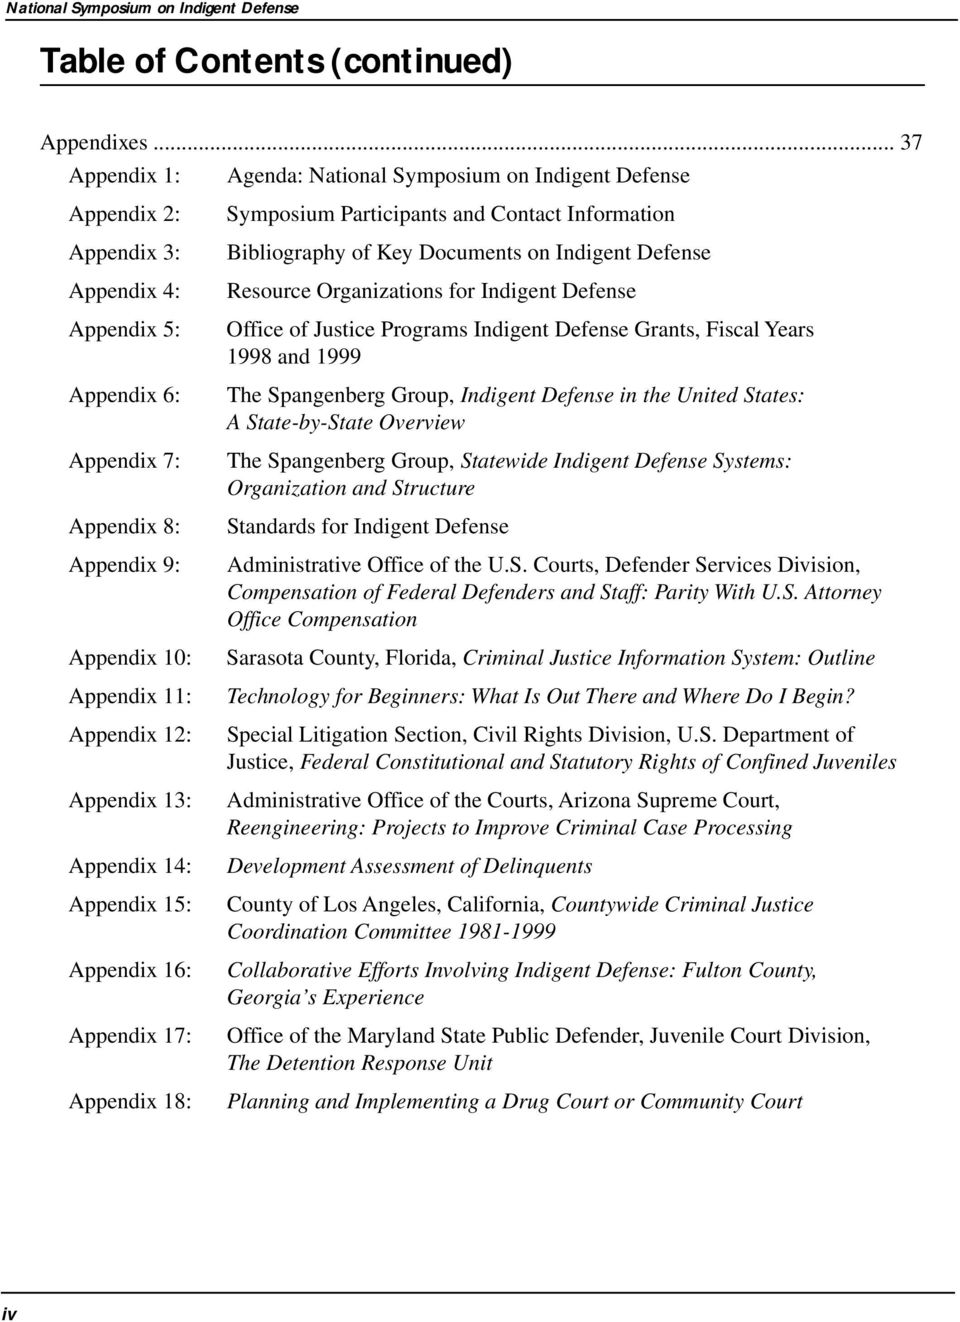 Appendix 13: Appendix 14: Appendix 15: Appendix 16: Appendix 17: Appendix 18: Symposium Participants and Contact Information Bibliography of Key Documents on Indigent Defense Resource Organizations